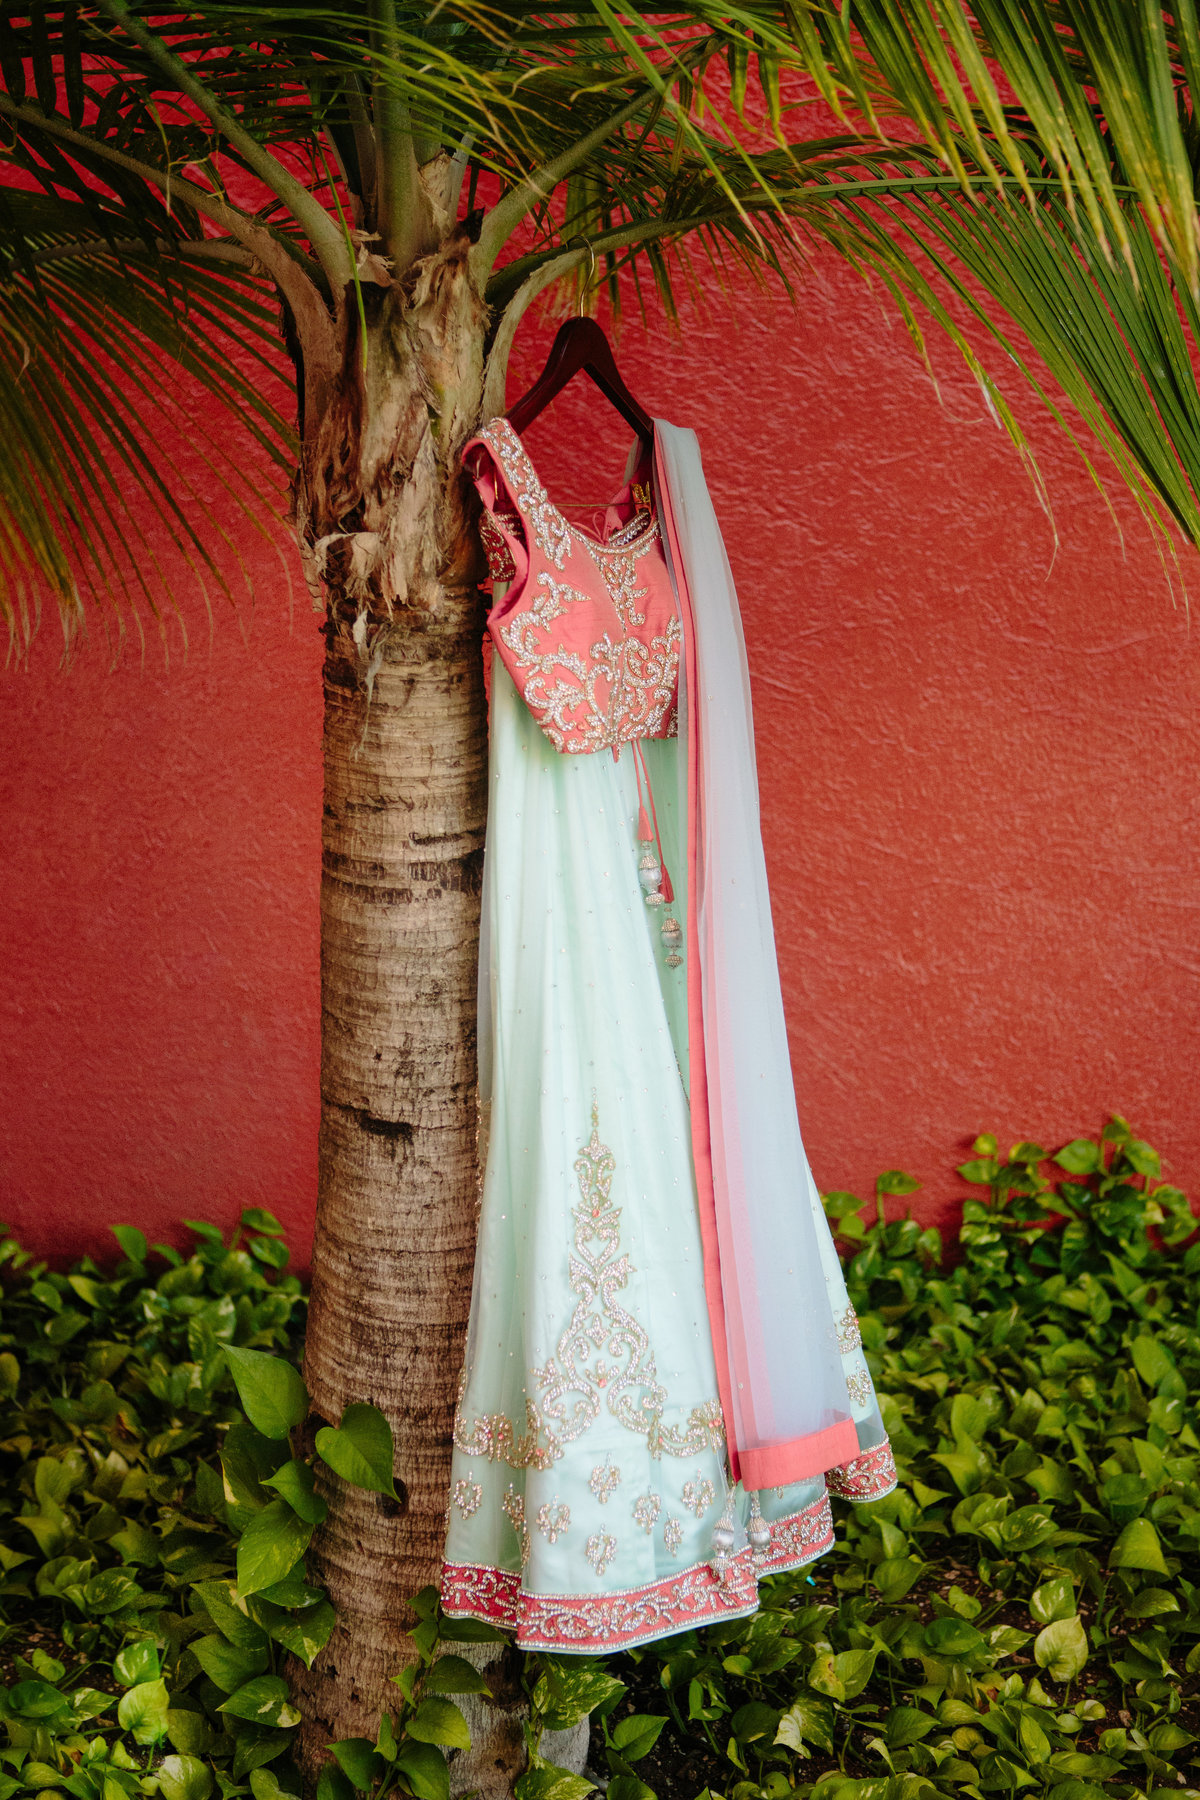 A multi day destination wedding in Mexico with Christian and Hindu influences, all set at the Hard Rock Riviera Maya.